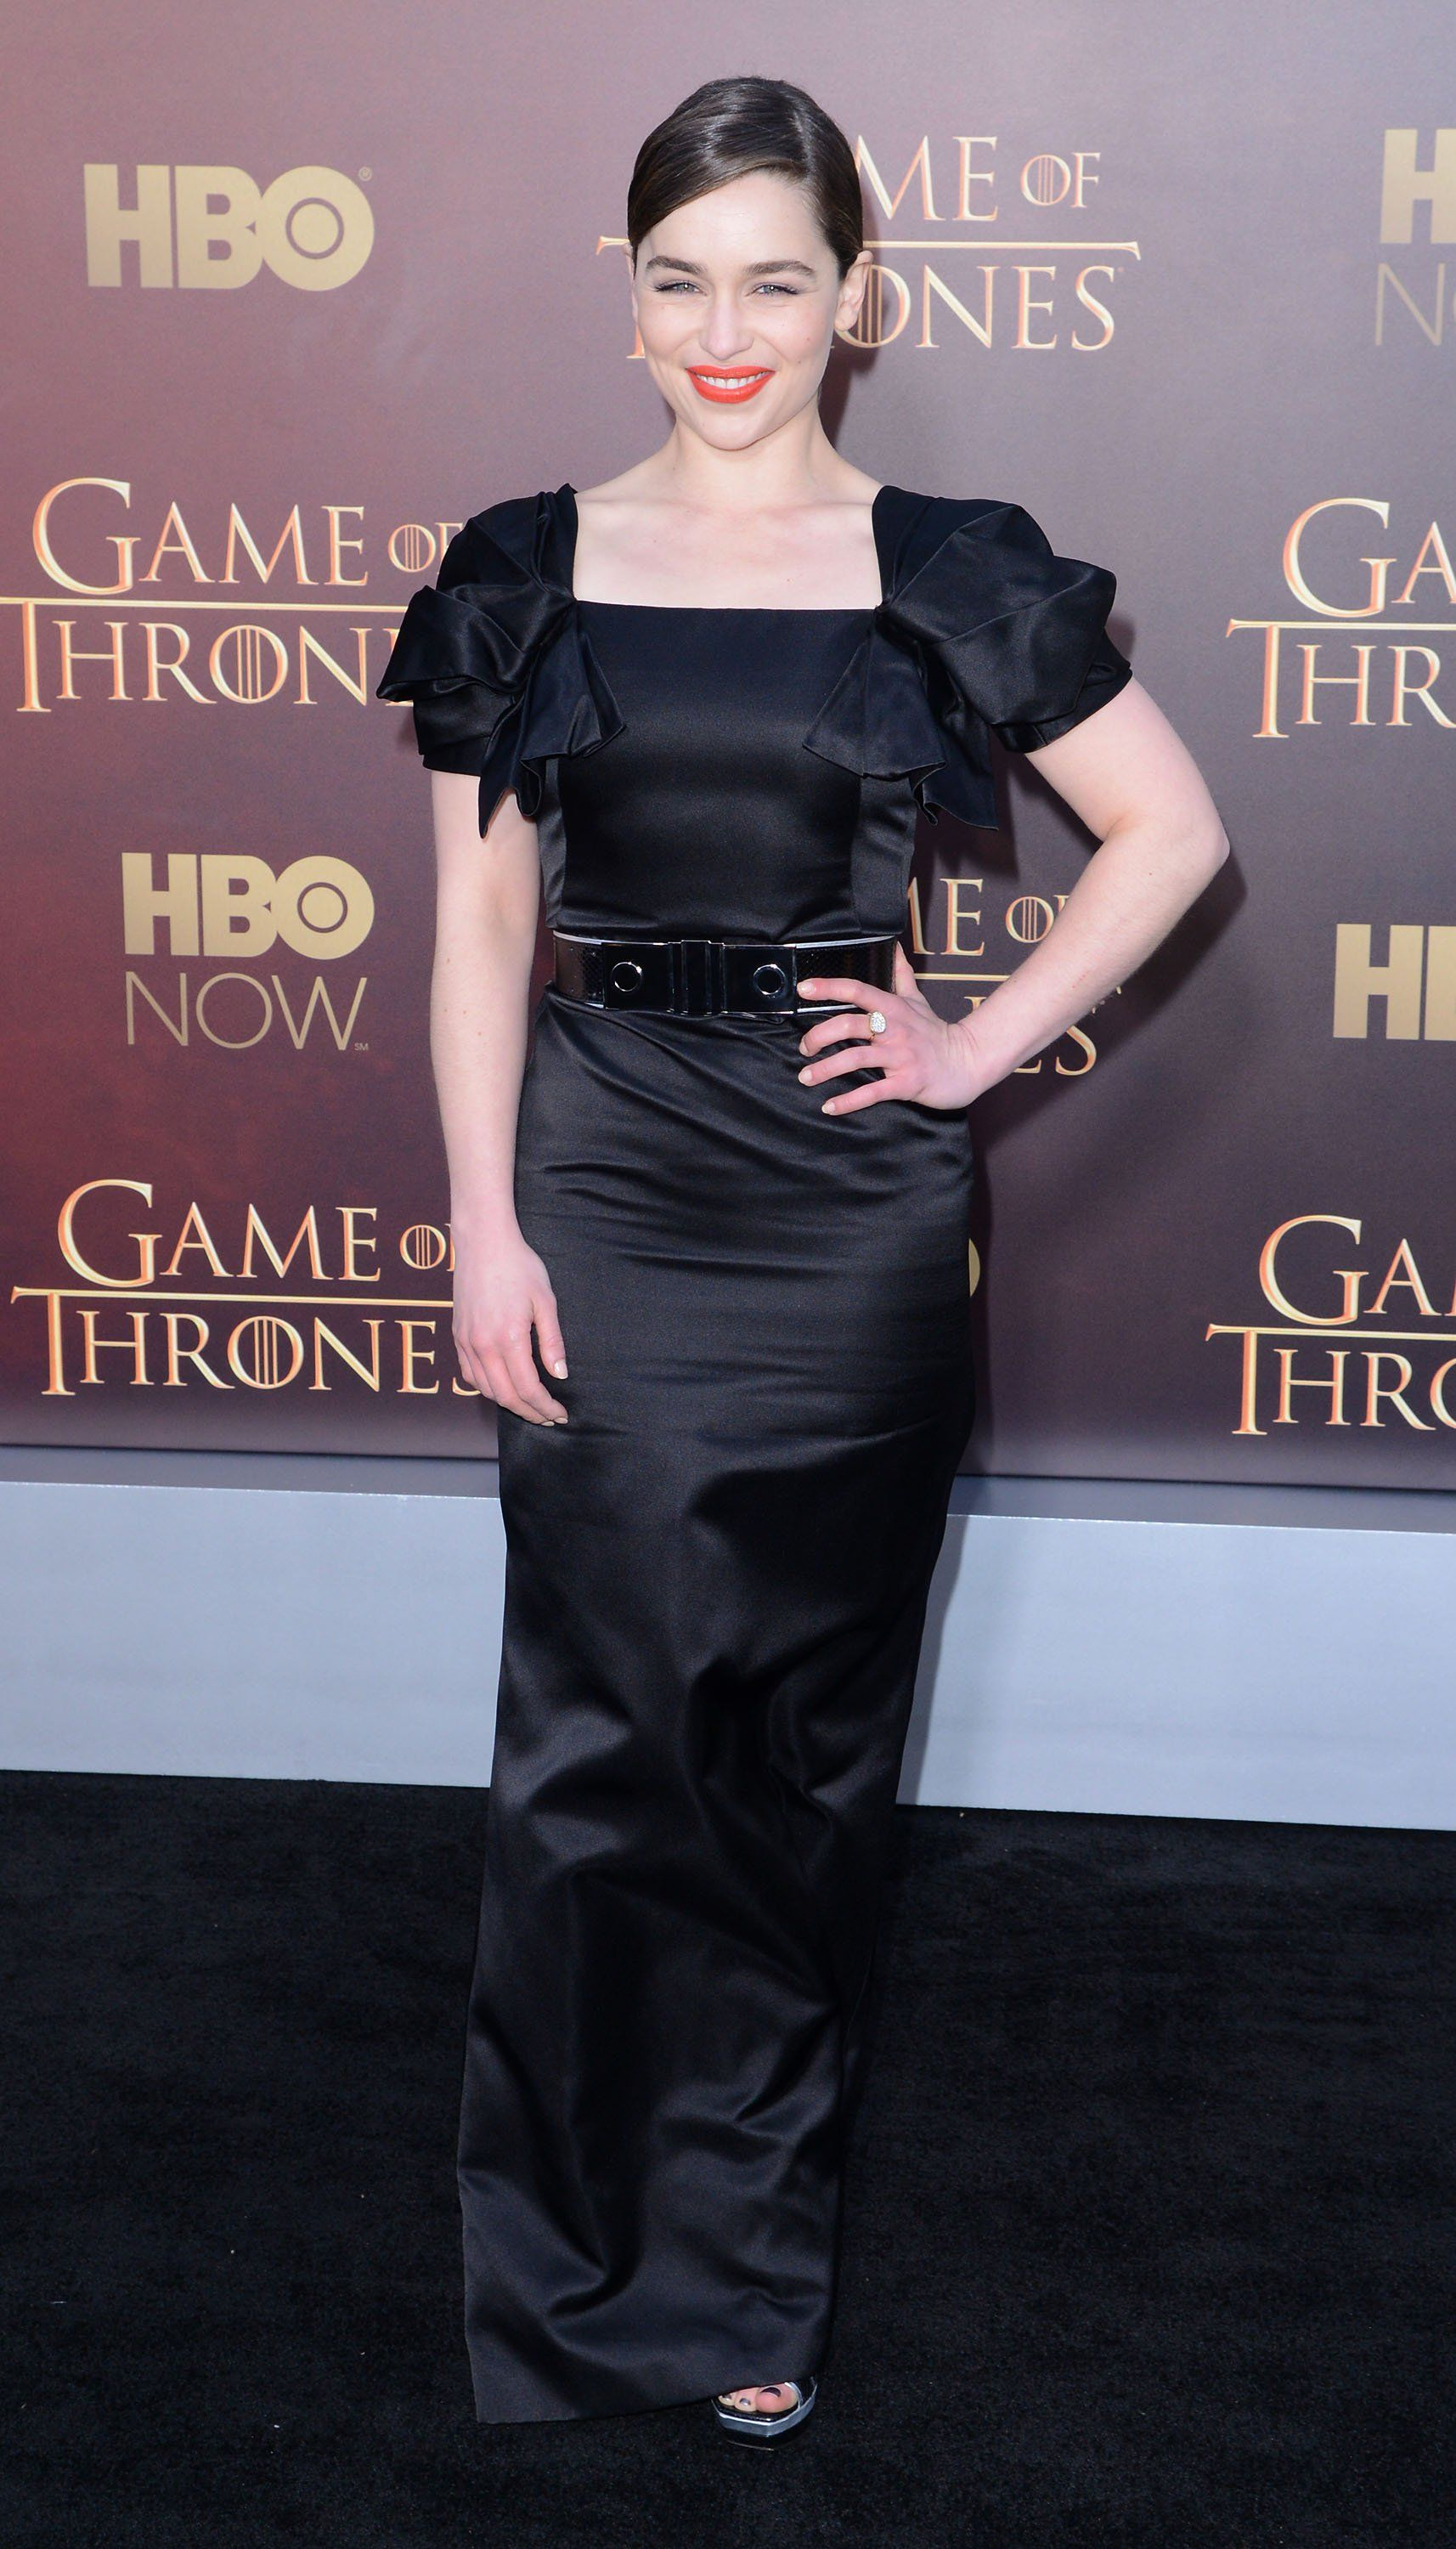 The Game of Thrones Cast Was Hardly Recognizable at Last Night's Premiere